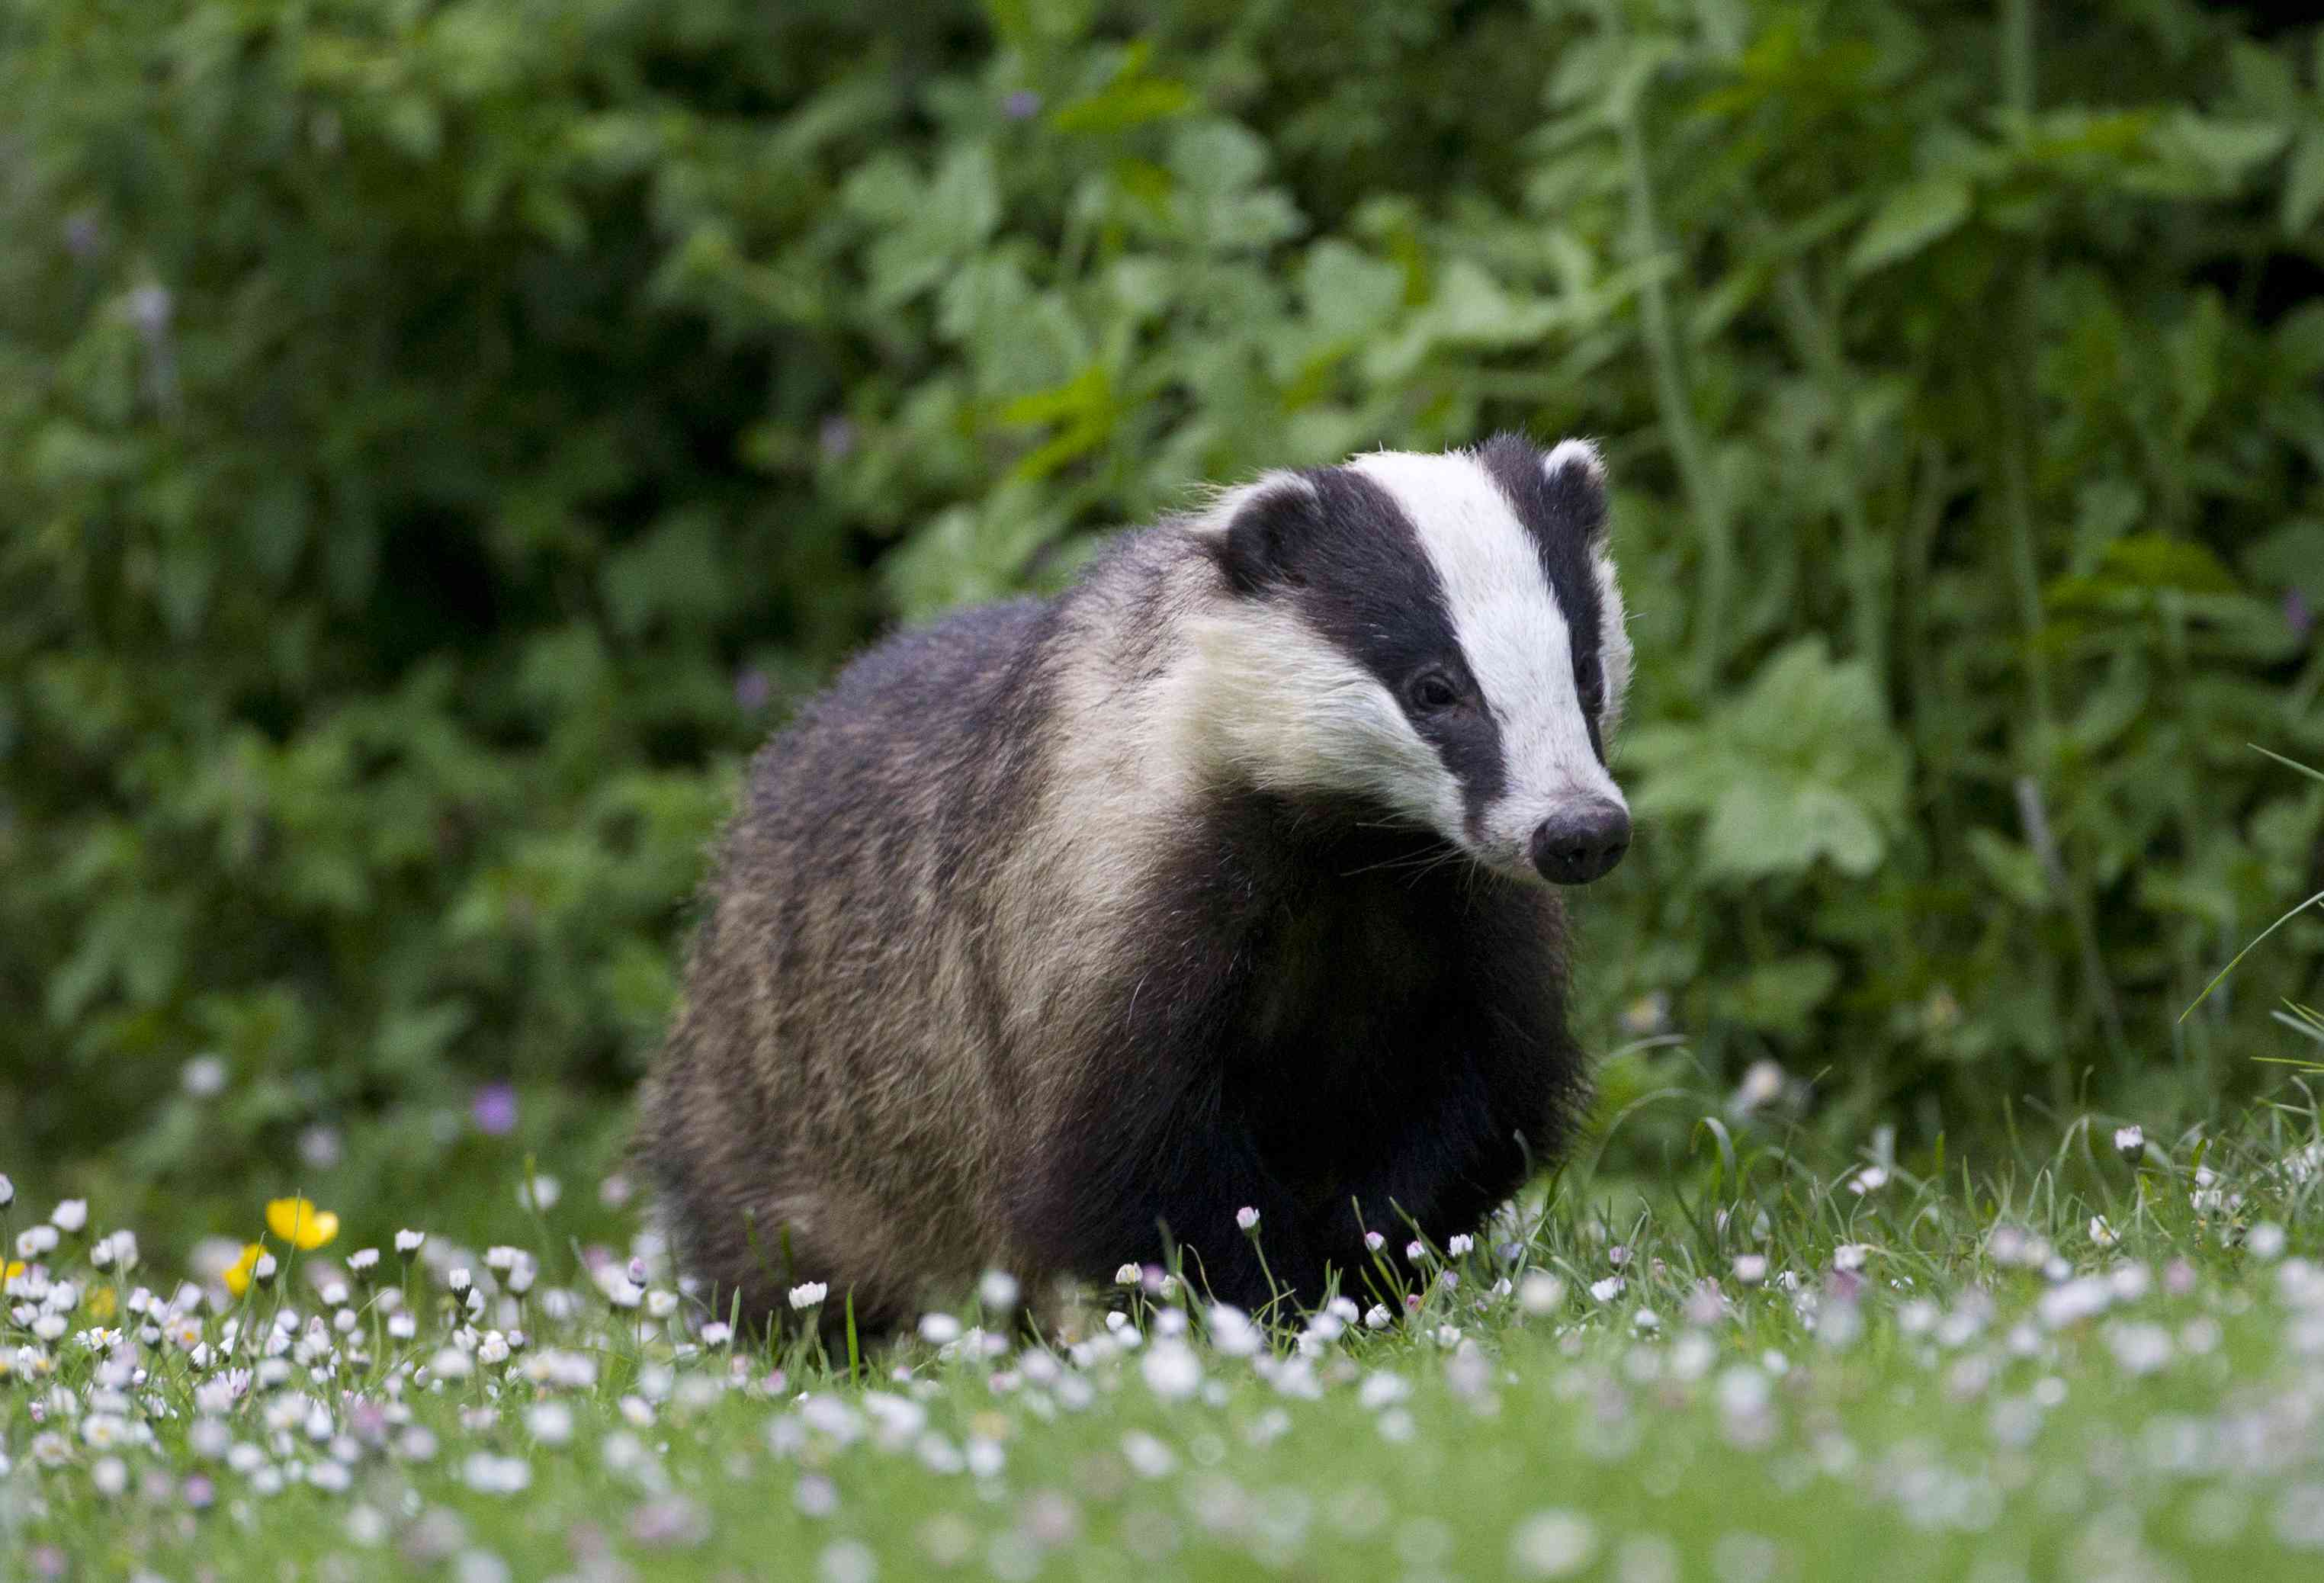 Badger in a field of wildflowers, England